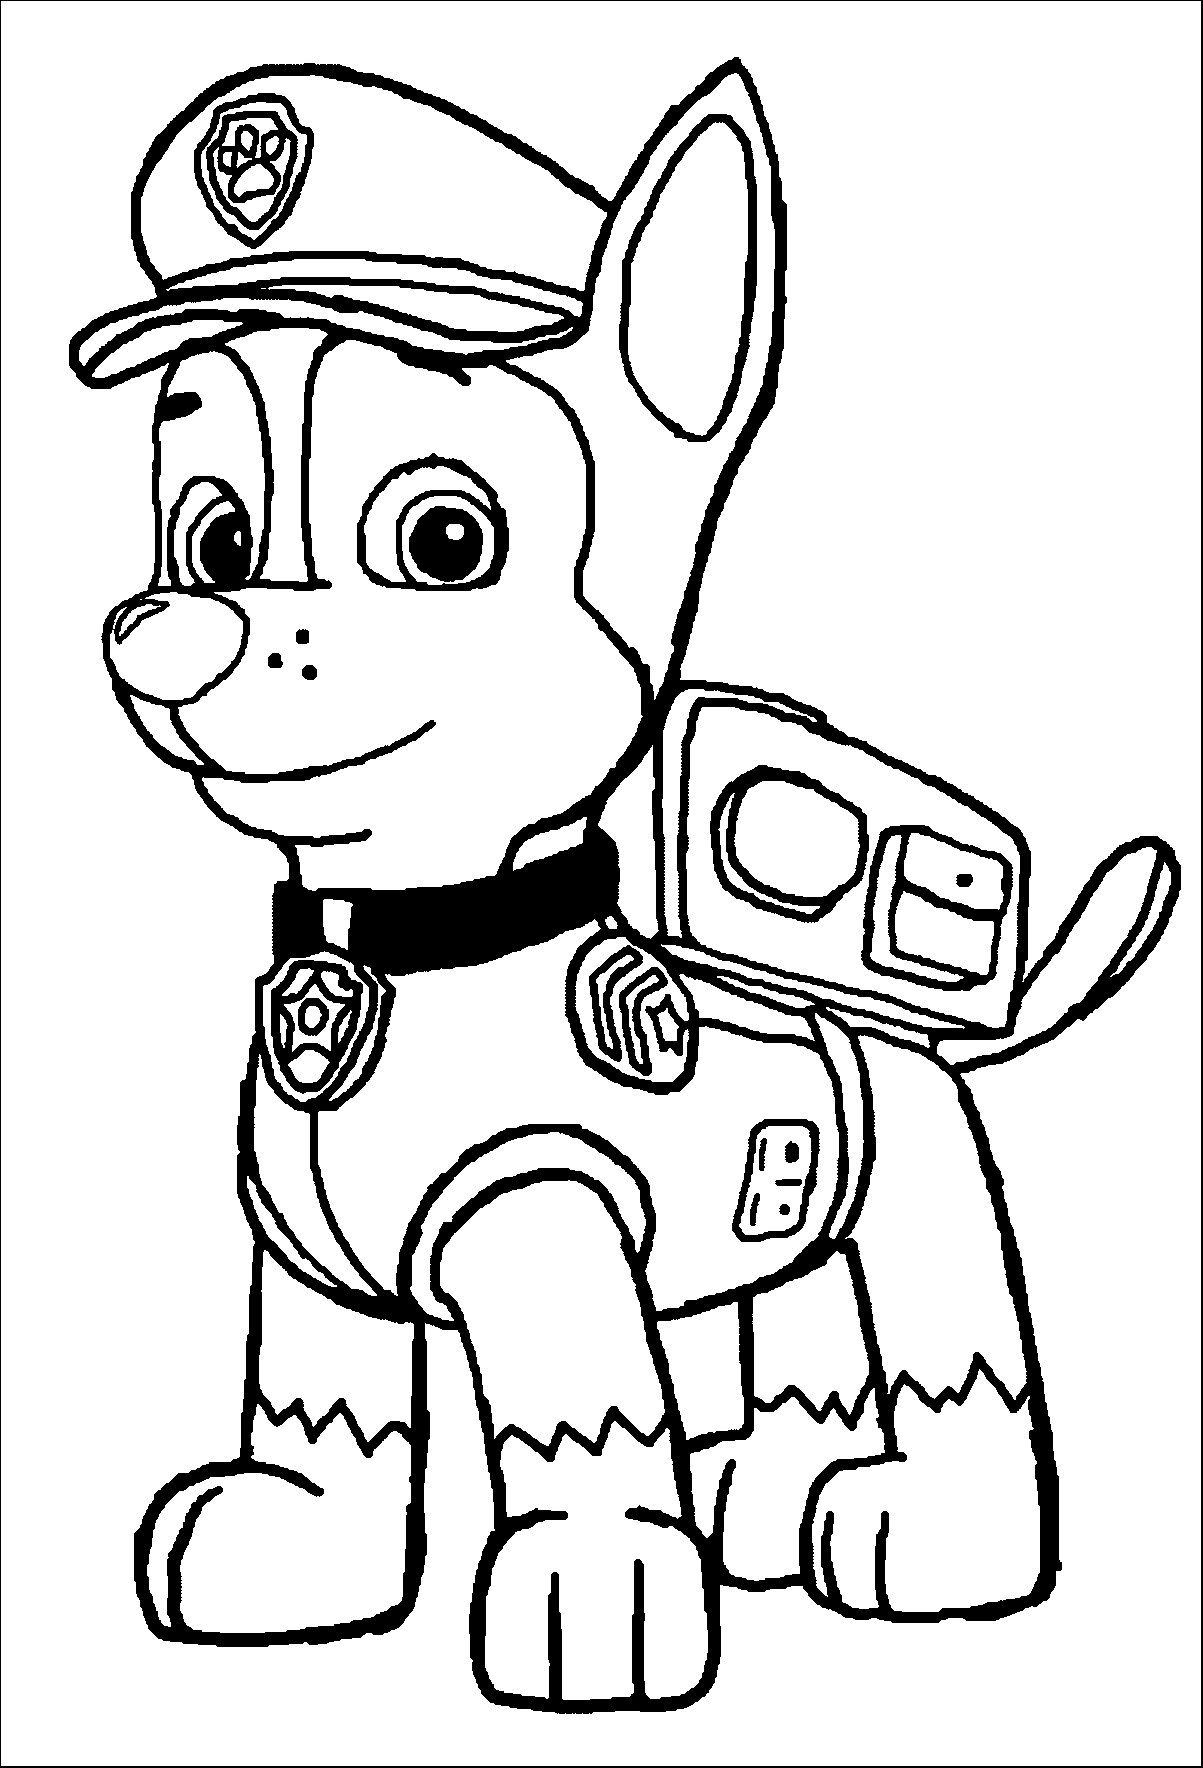 paw patrol pictures to print paw patrol coloring pages printable free coloring sheets paw pictures patrol print to